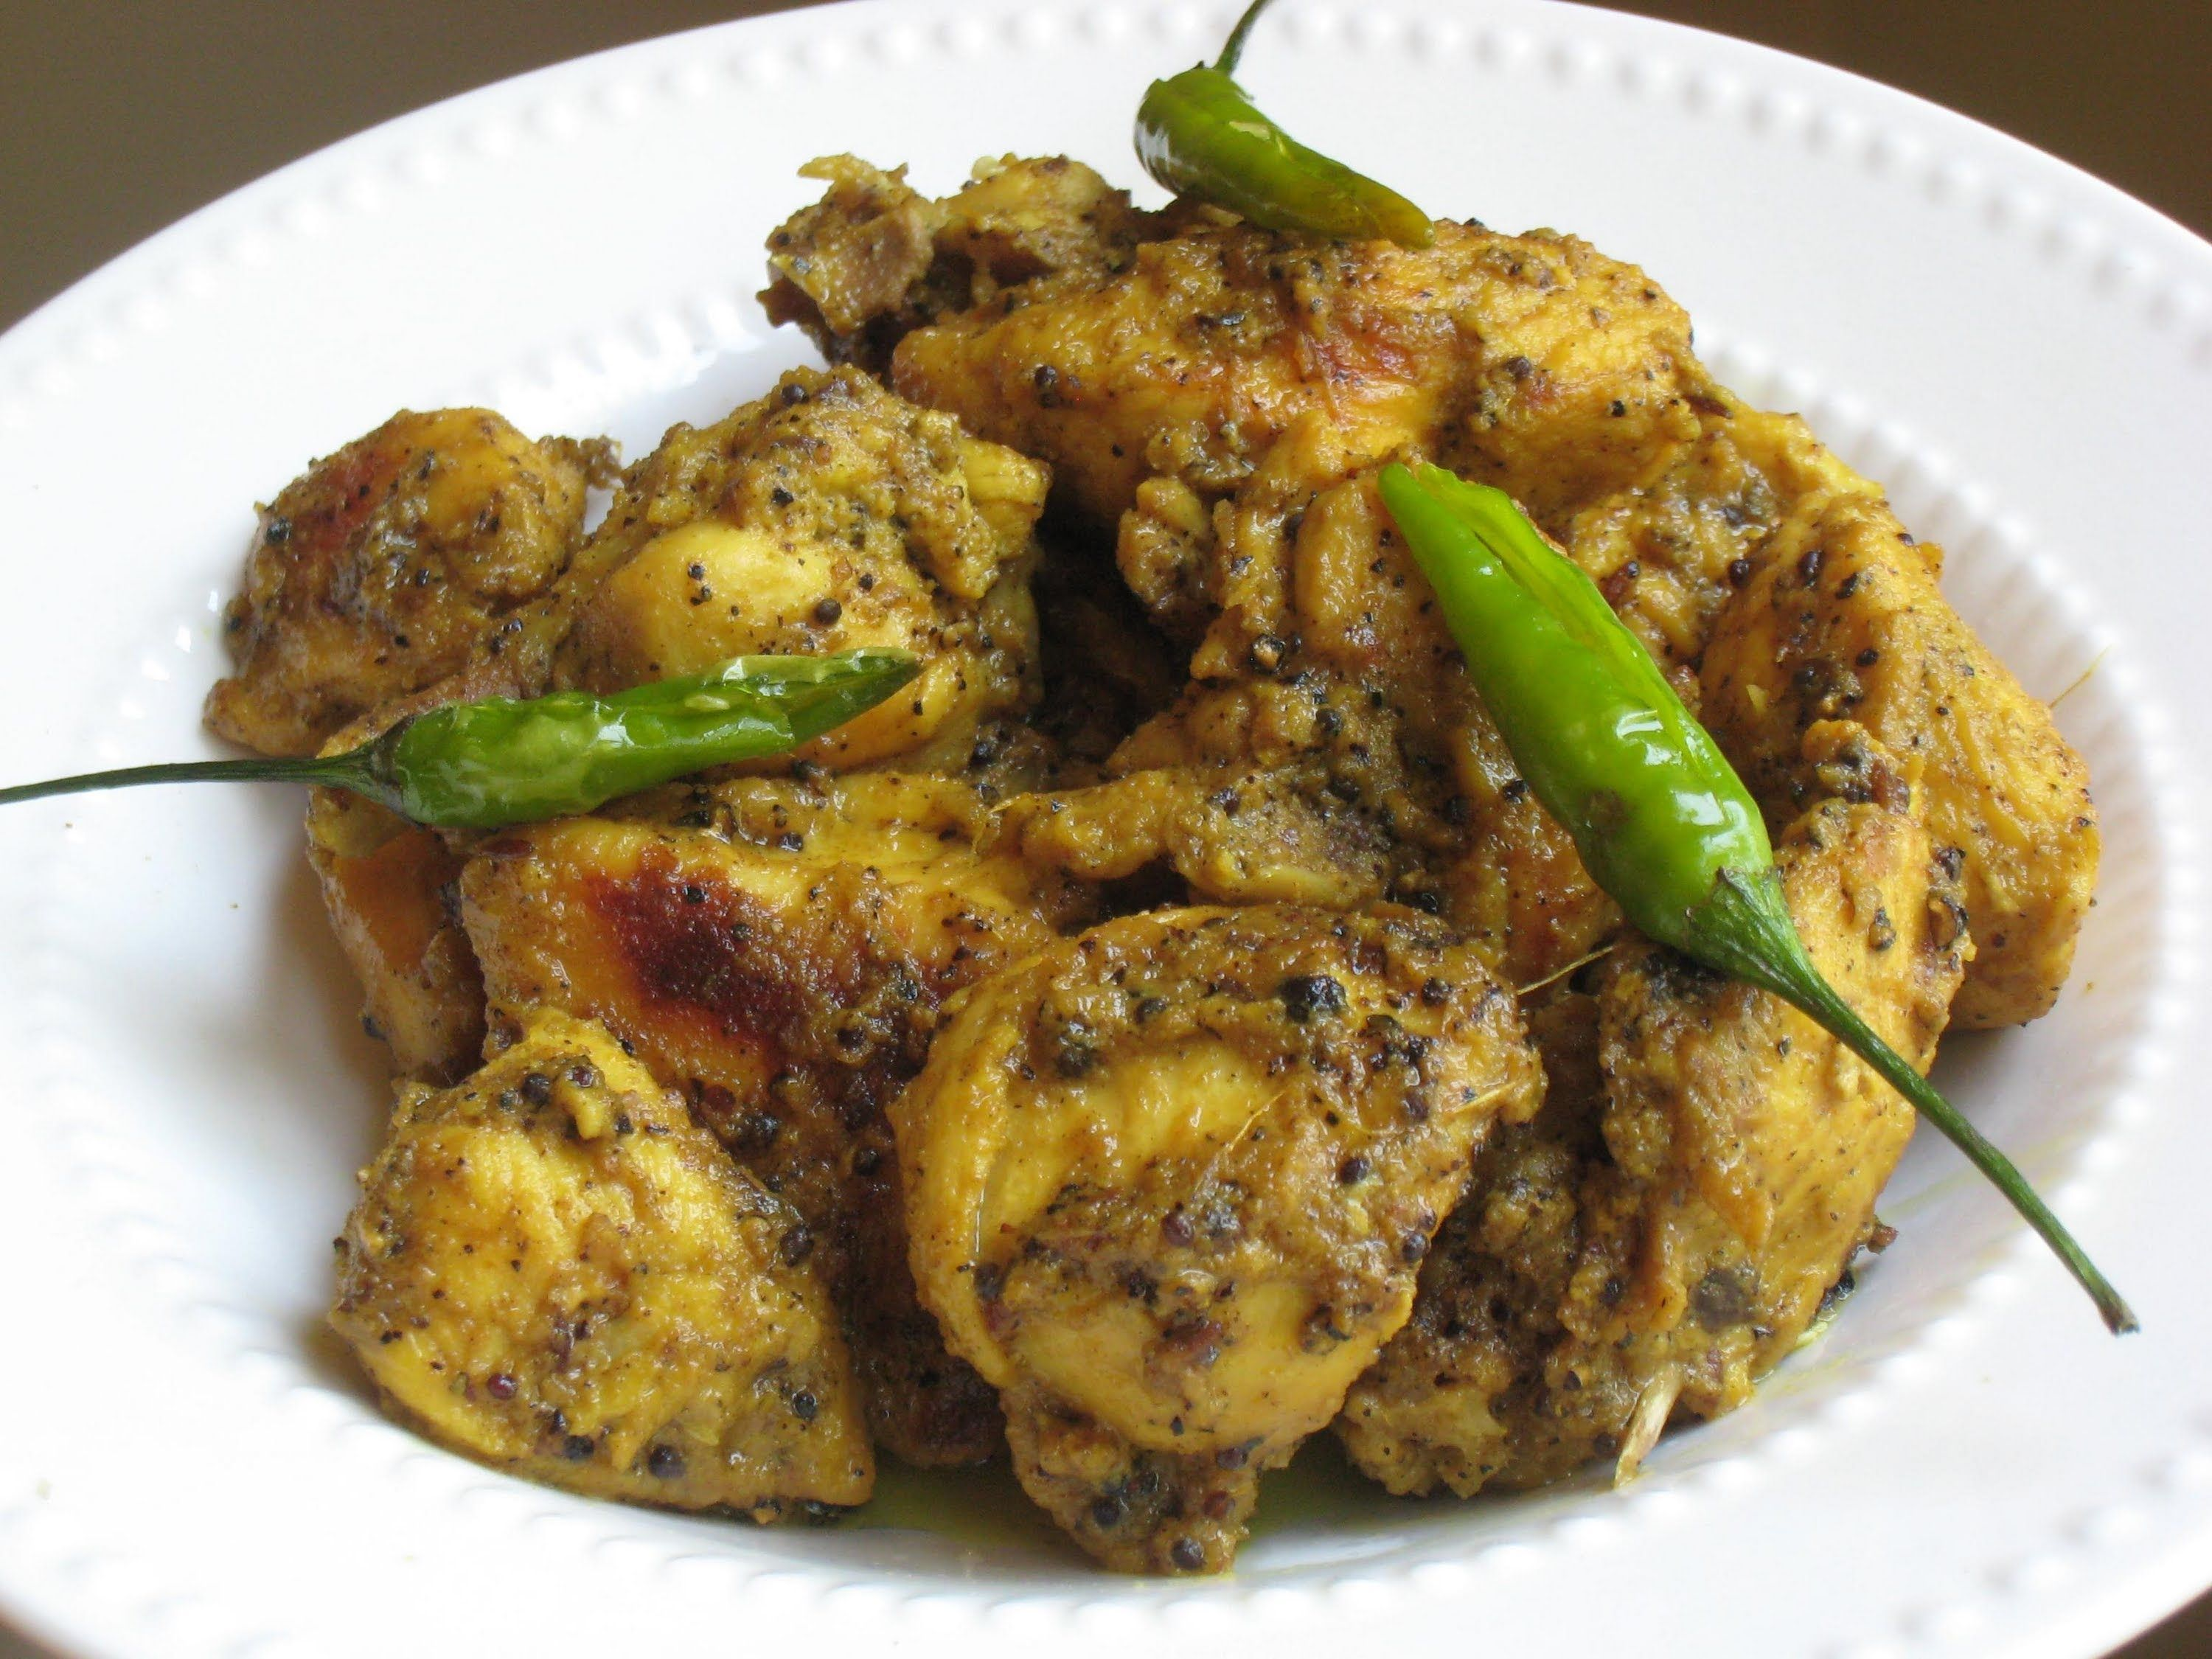 Kali mirch chicken easy cook with food junction indian chicken kali mirch chicken easy cook with food junction forumfinder Choice Image